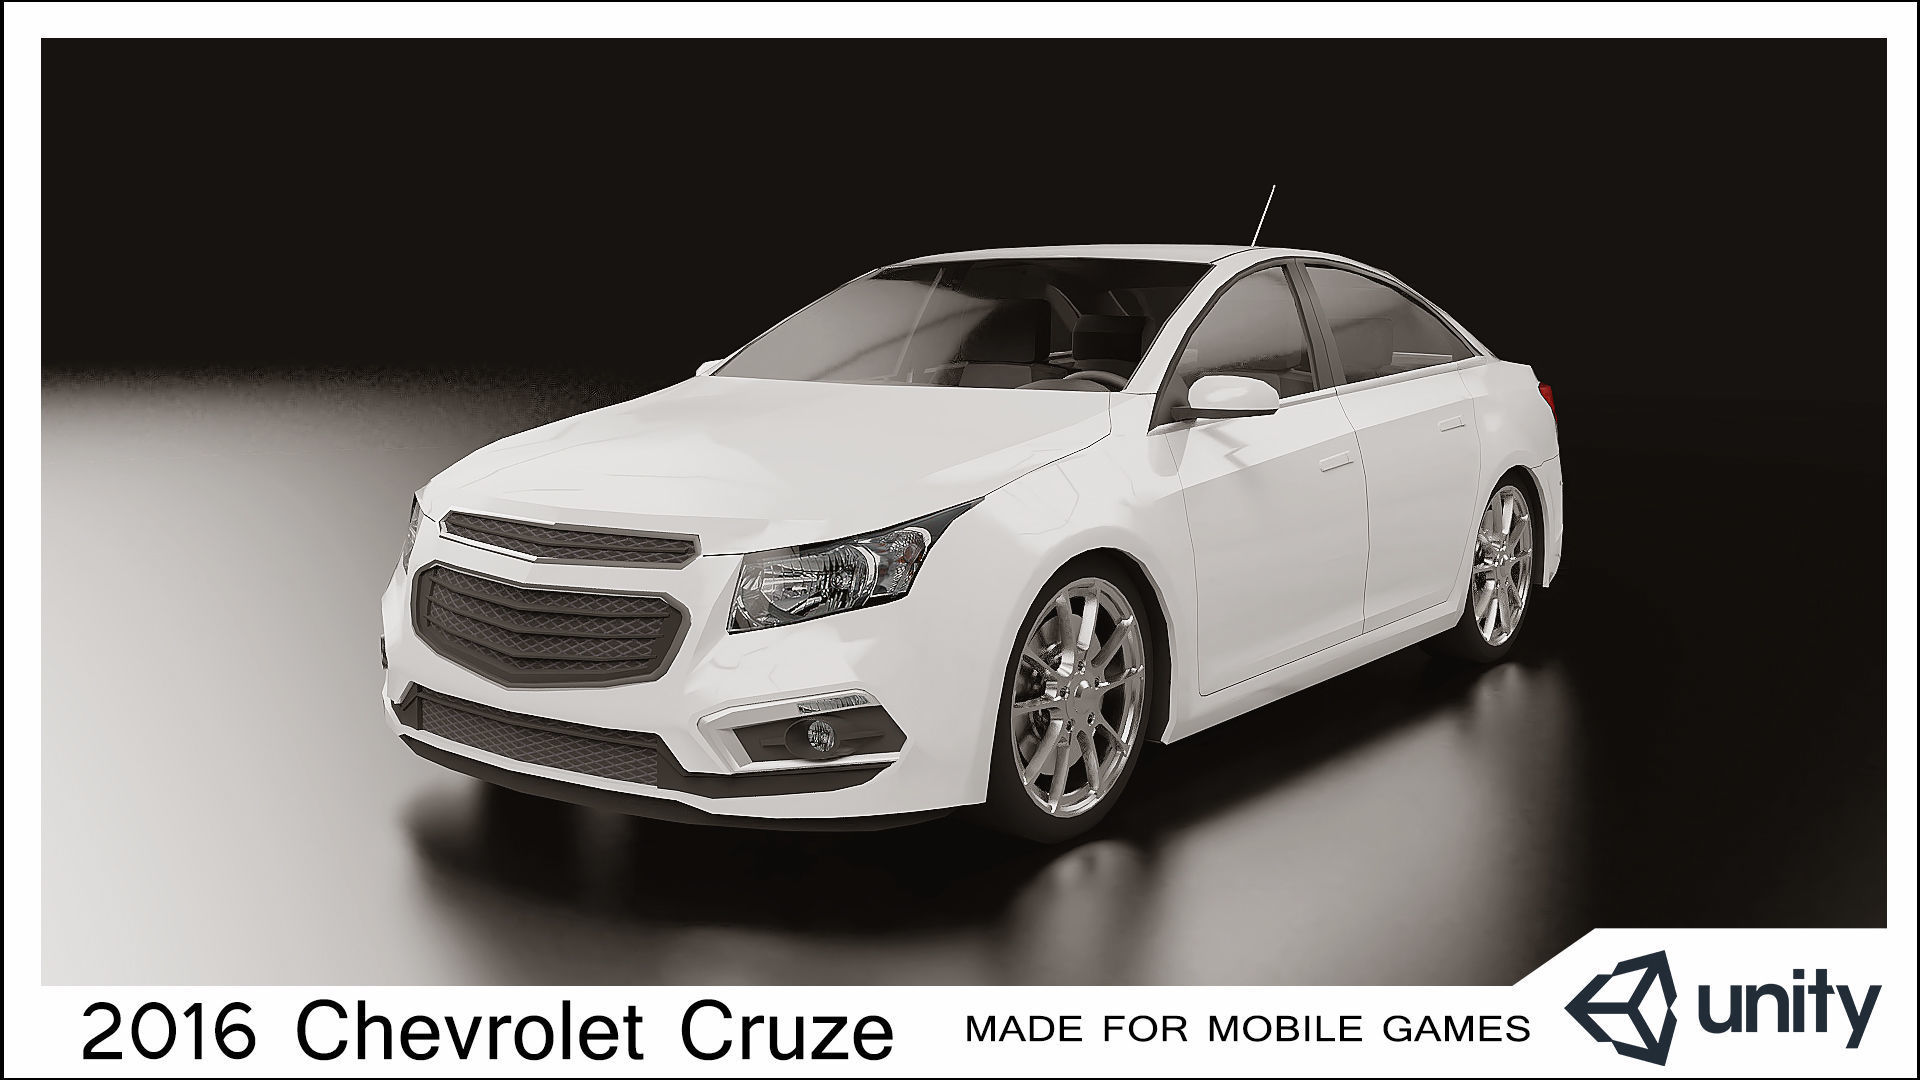 jun charging tesla cruze leaf detroit the in news confusion week chevy video reverse chevrolet unveiling mile h